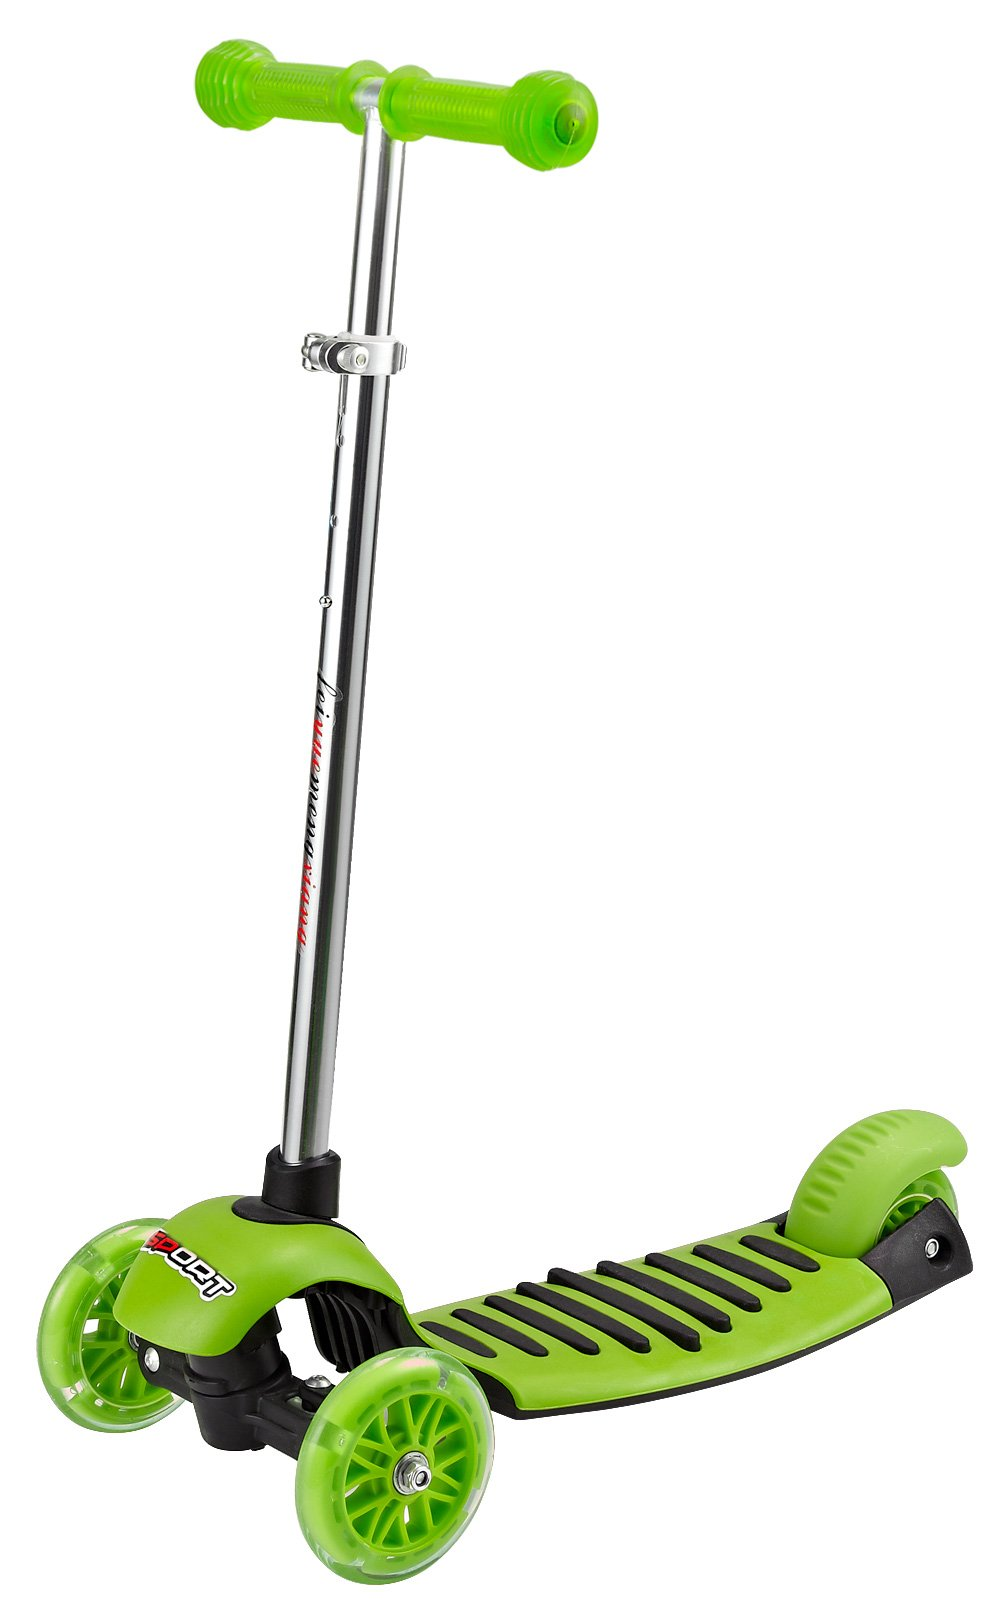 Voyage Sports Kick Scooter for Toddlers - Kick Scooter 3 Wheel Adjustable Height, Lean 2 Turn,Kids Scooters 3 Wheel with LED Light up for Boys and Girls by Voyage Sports (Image #1)